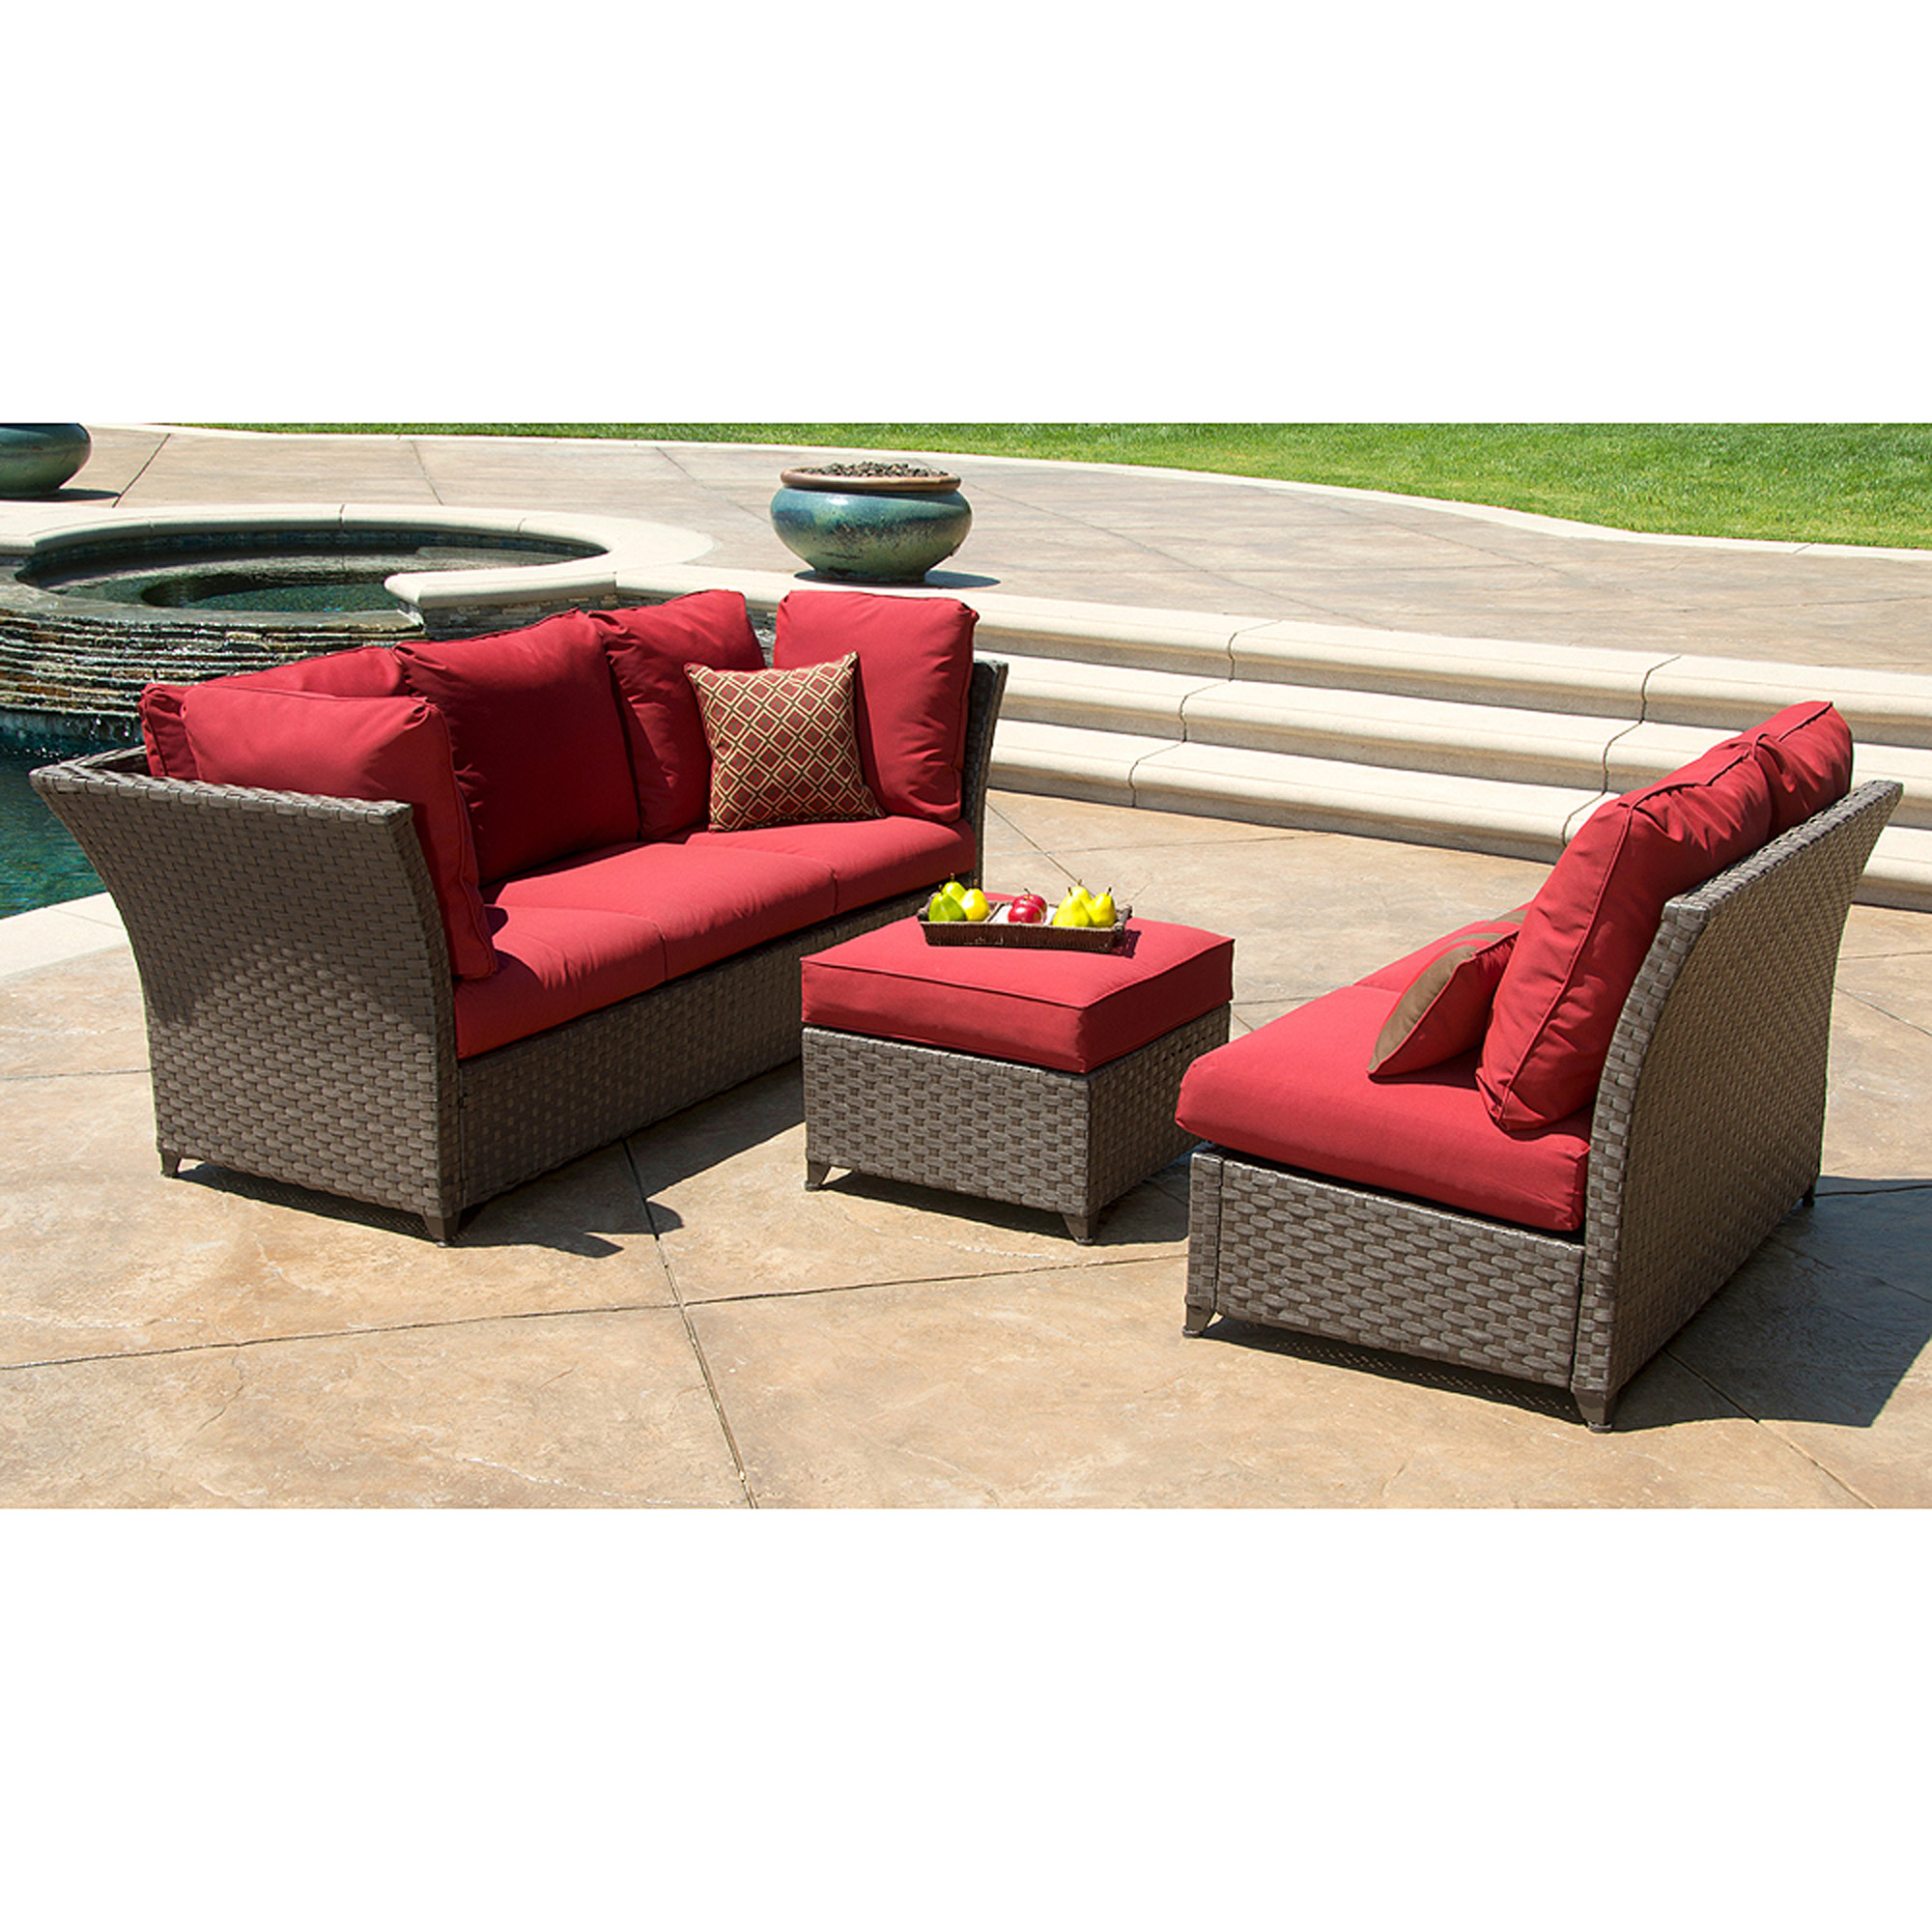 Better Homes and Gardens Rushreed 3 Piece Outdoor Sectional Sofa